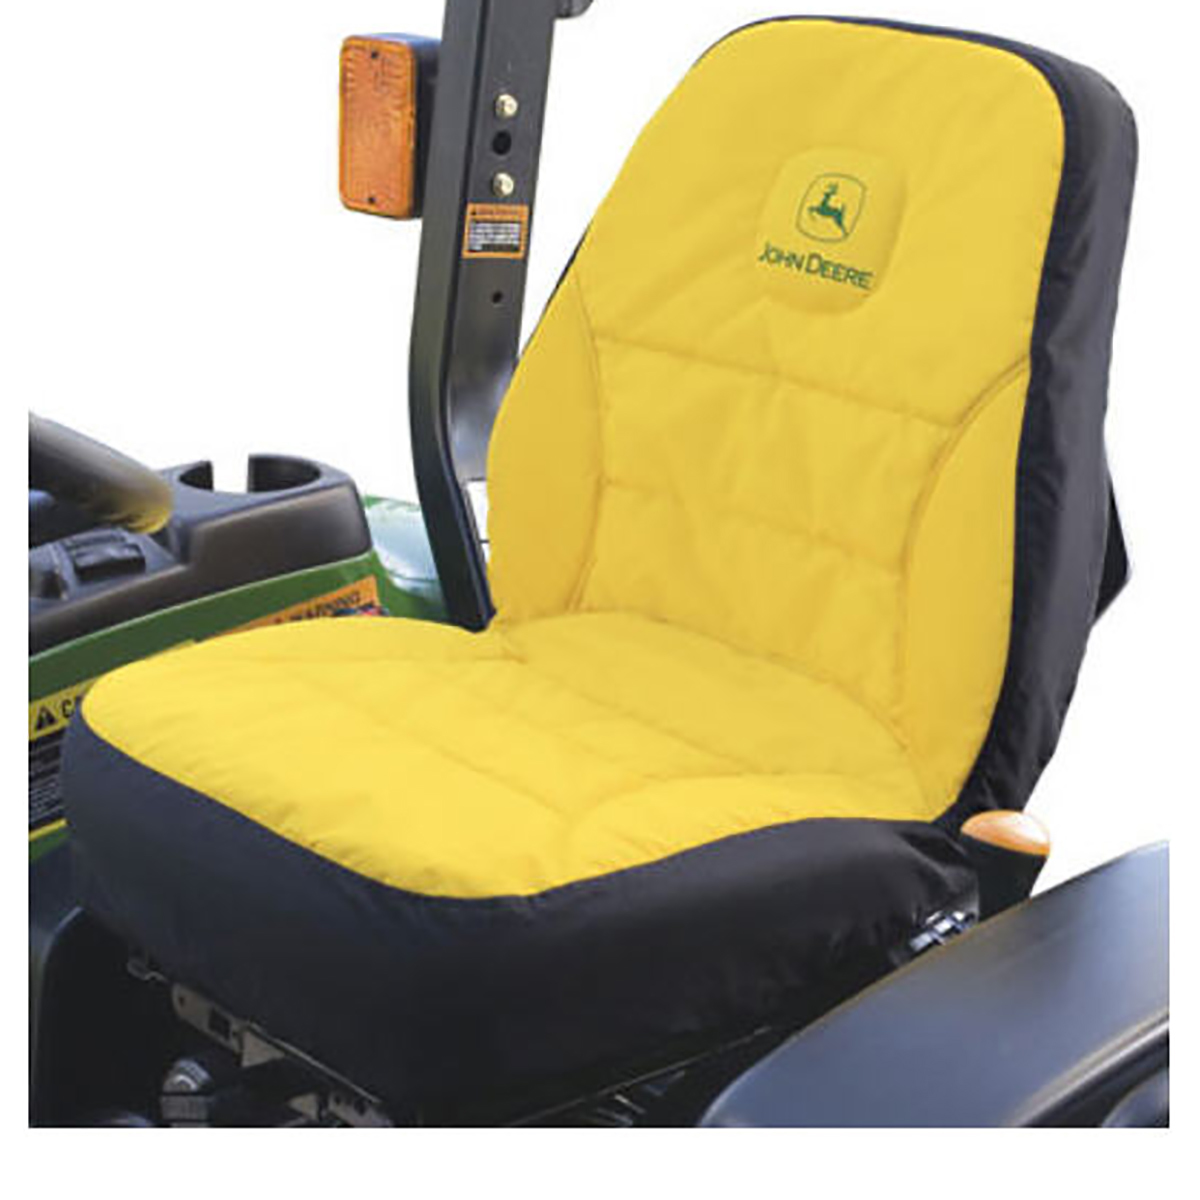 Deluxe Seat Cover For X700 Signature Series Riding Mowers Protects Seats Against Sun Damage Rain And Dirt With A Cushioned Extra